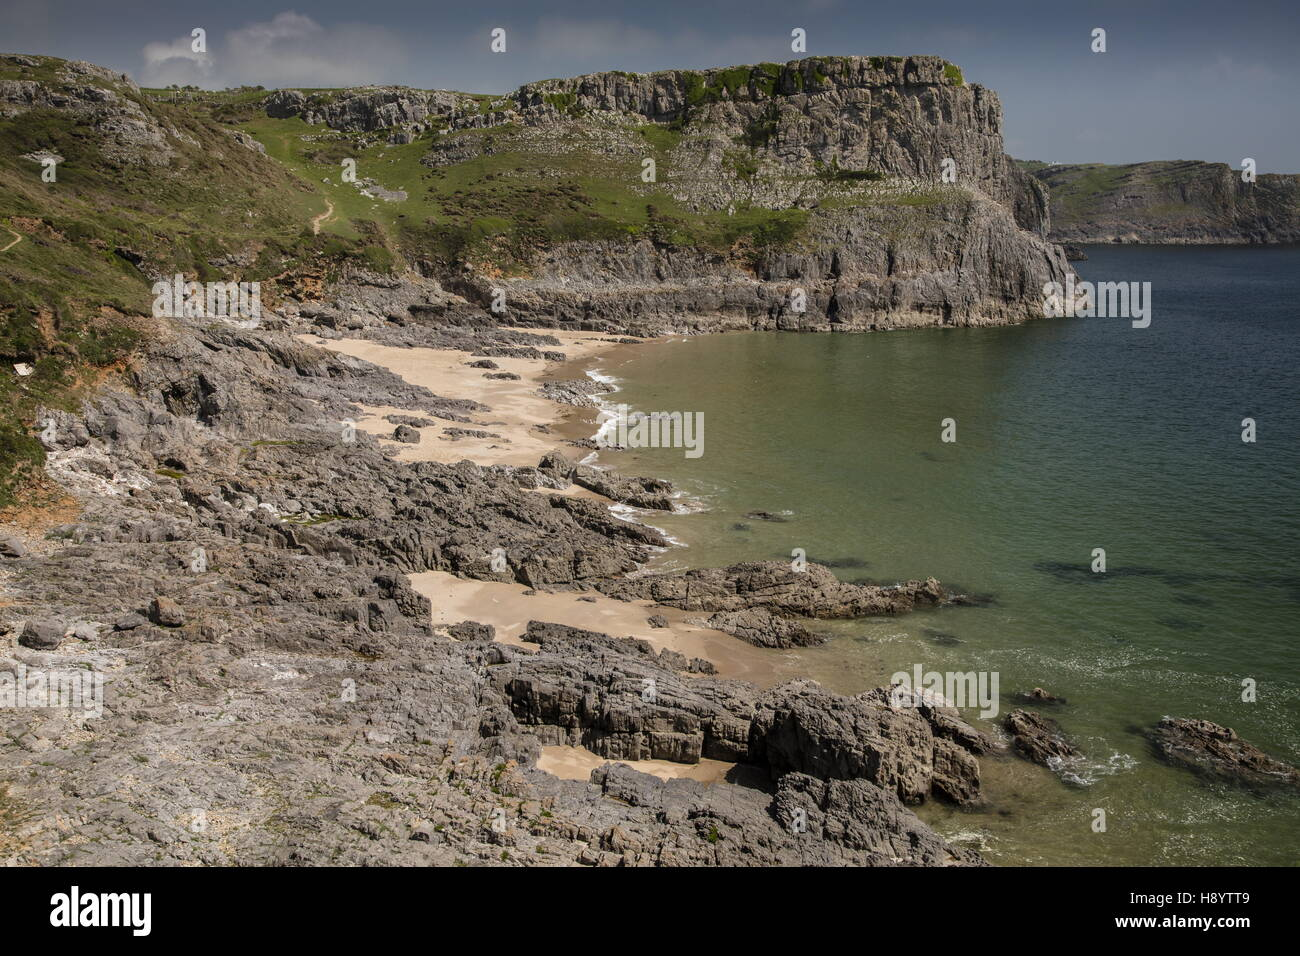 The south coast limestone cliffs of the Gower Peninsula, near Mewslade Bay; Gower Peninsula AONB, South Wales. - Stock Image